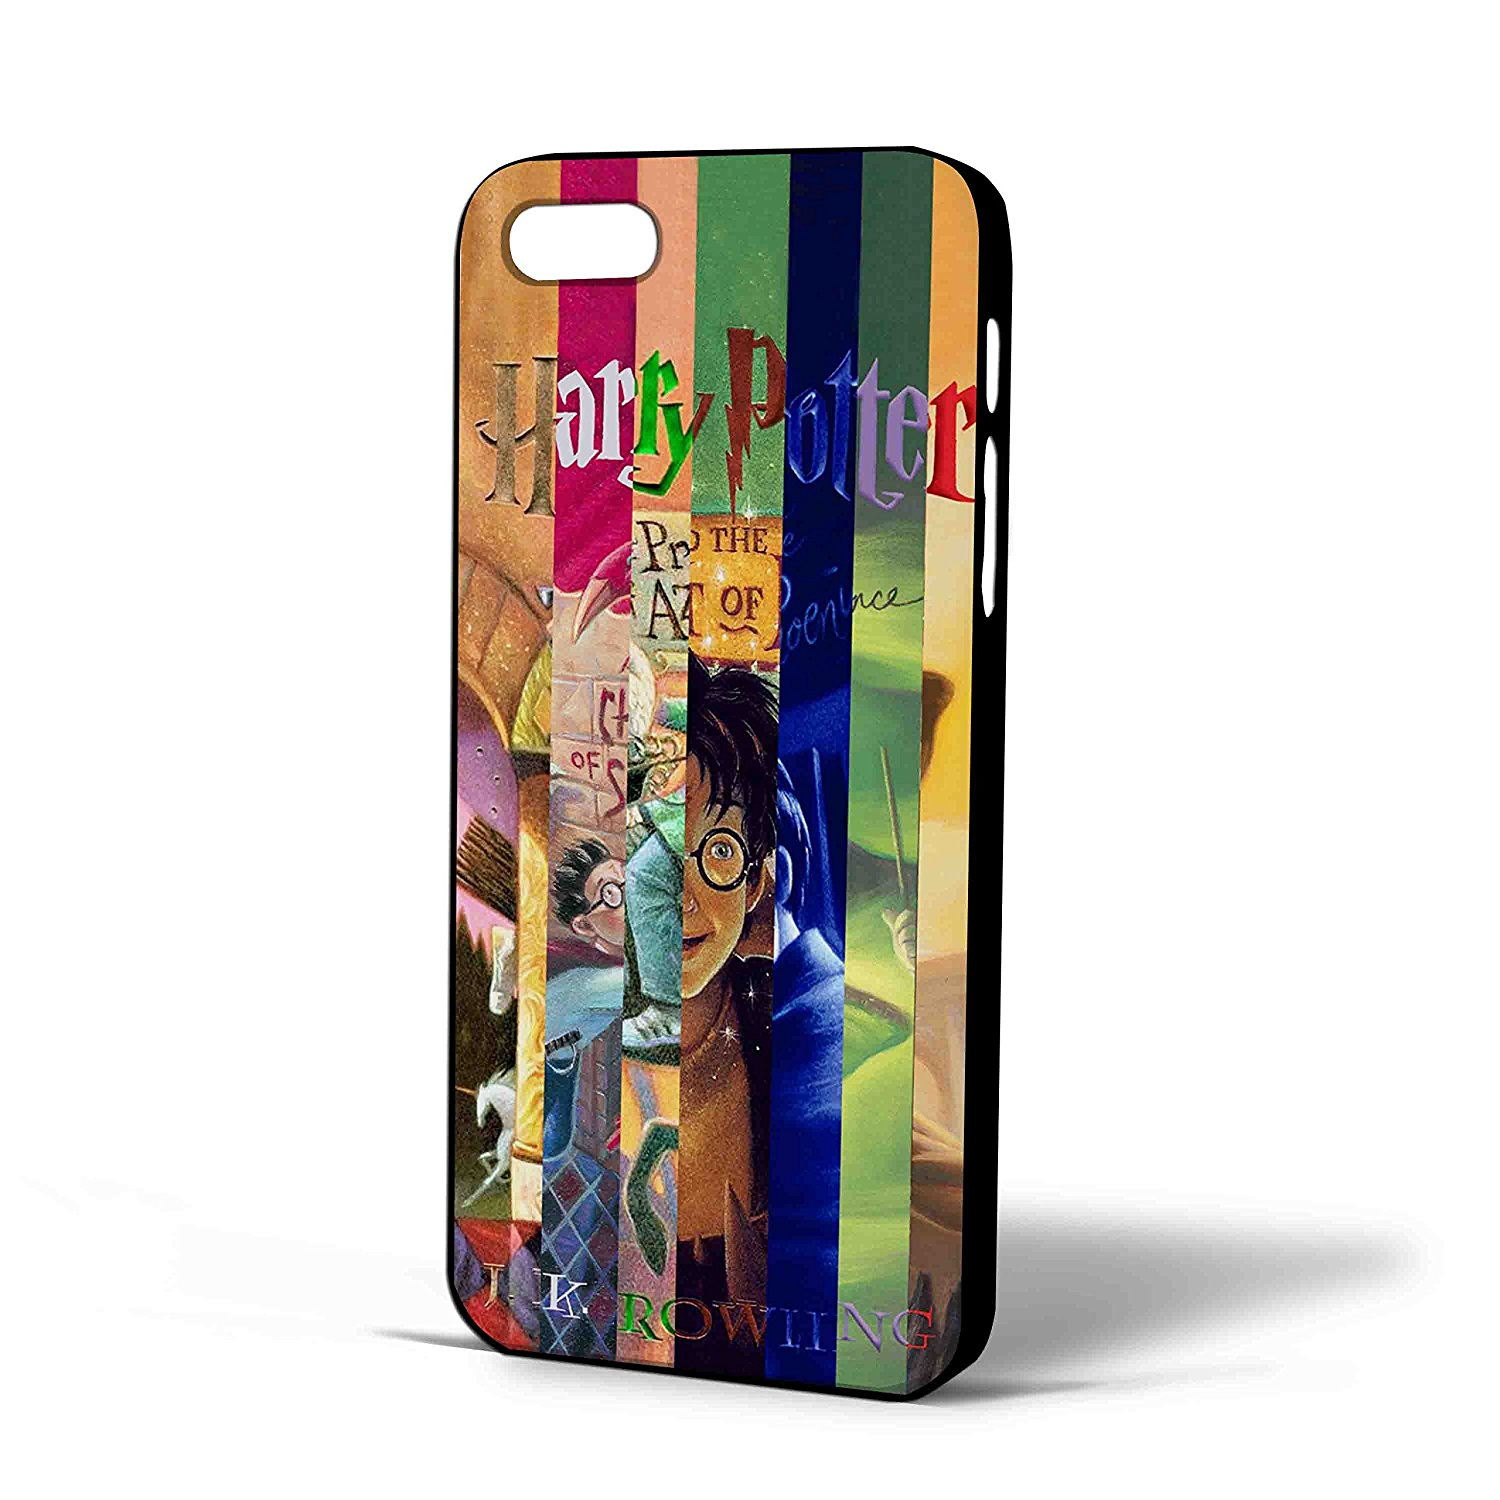 Ganma Harry Potter Book Case For iPhone Case (Case For iPhone 6 White)